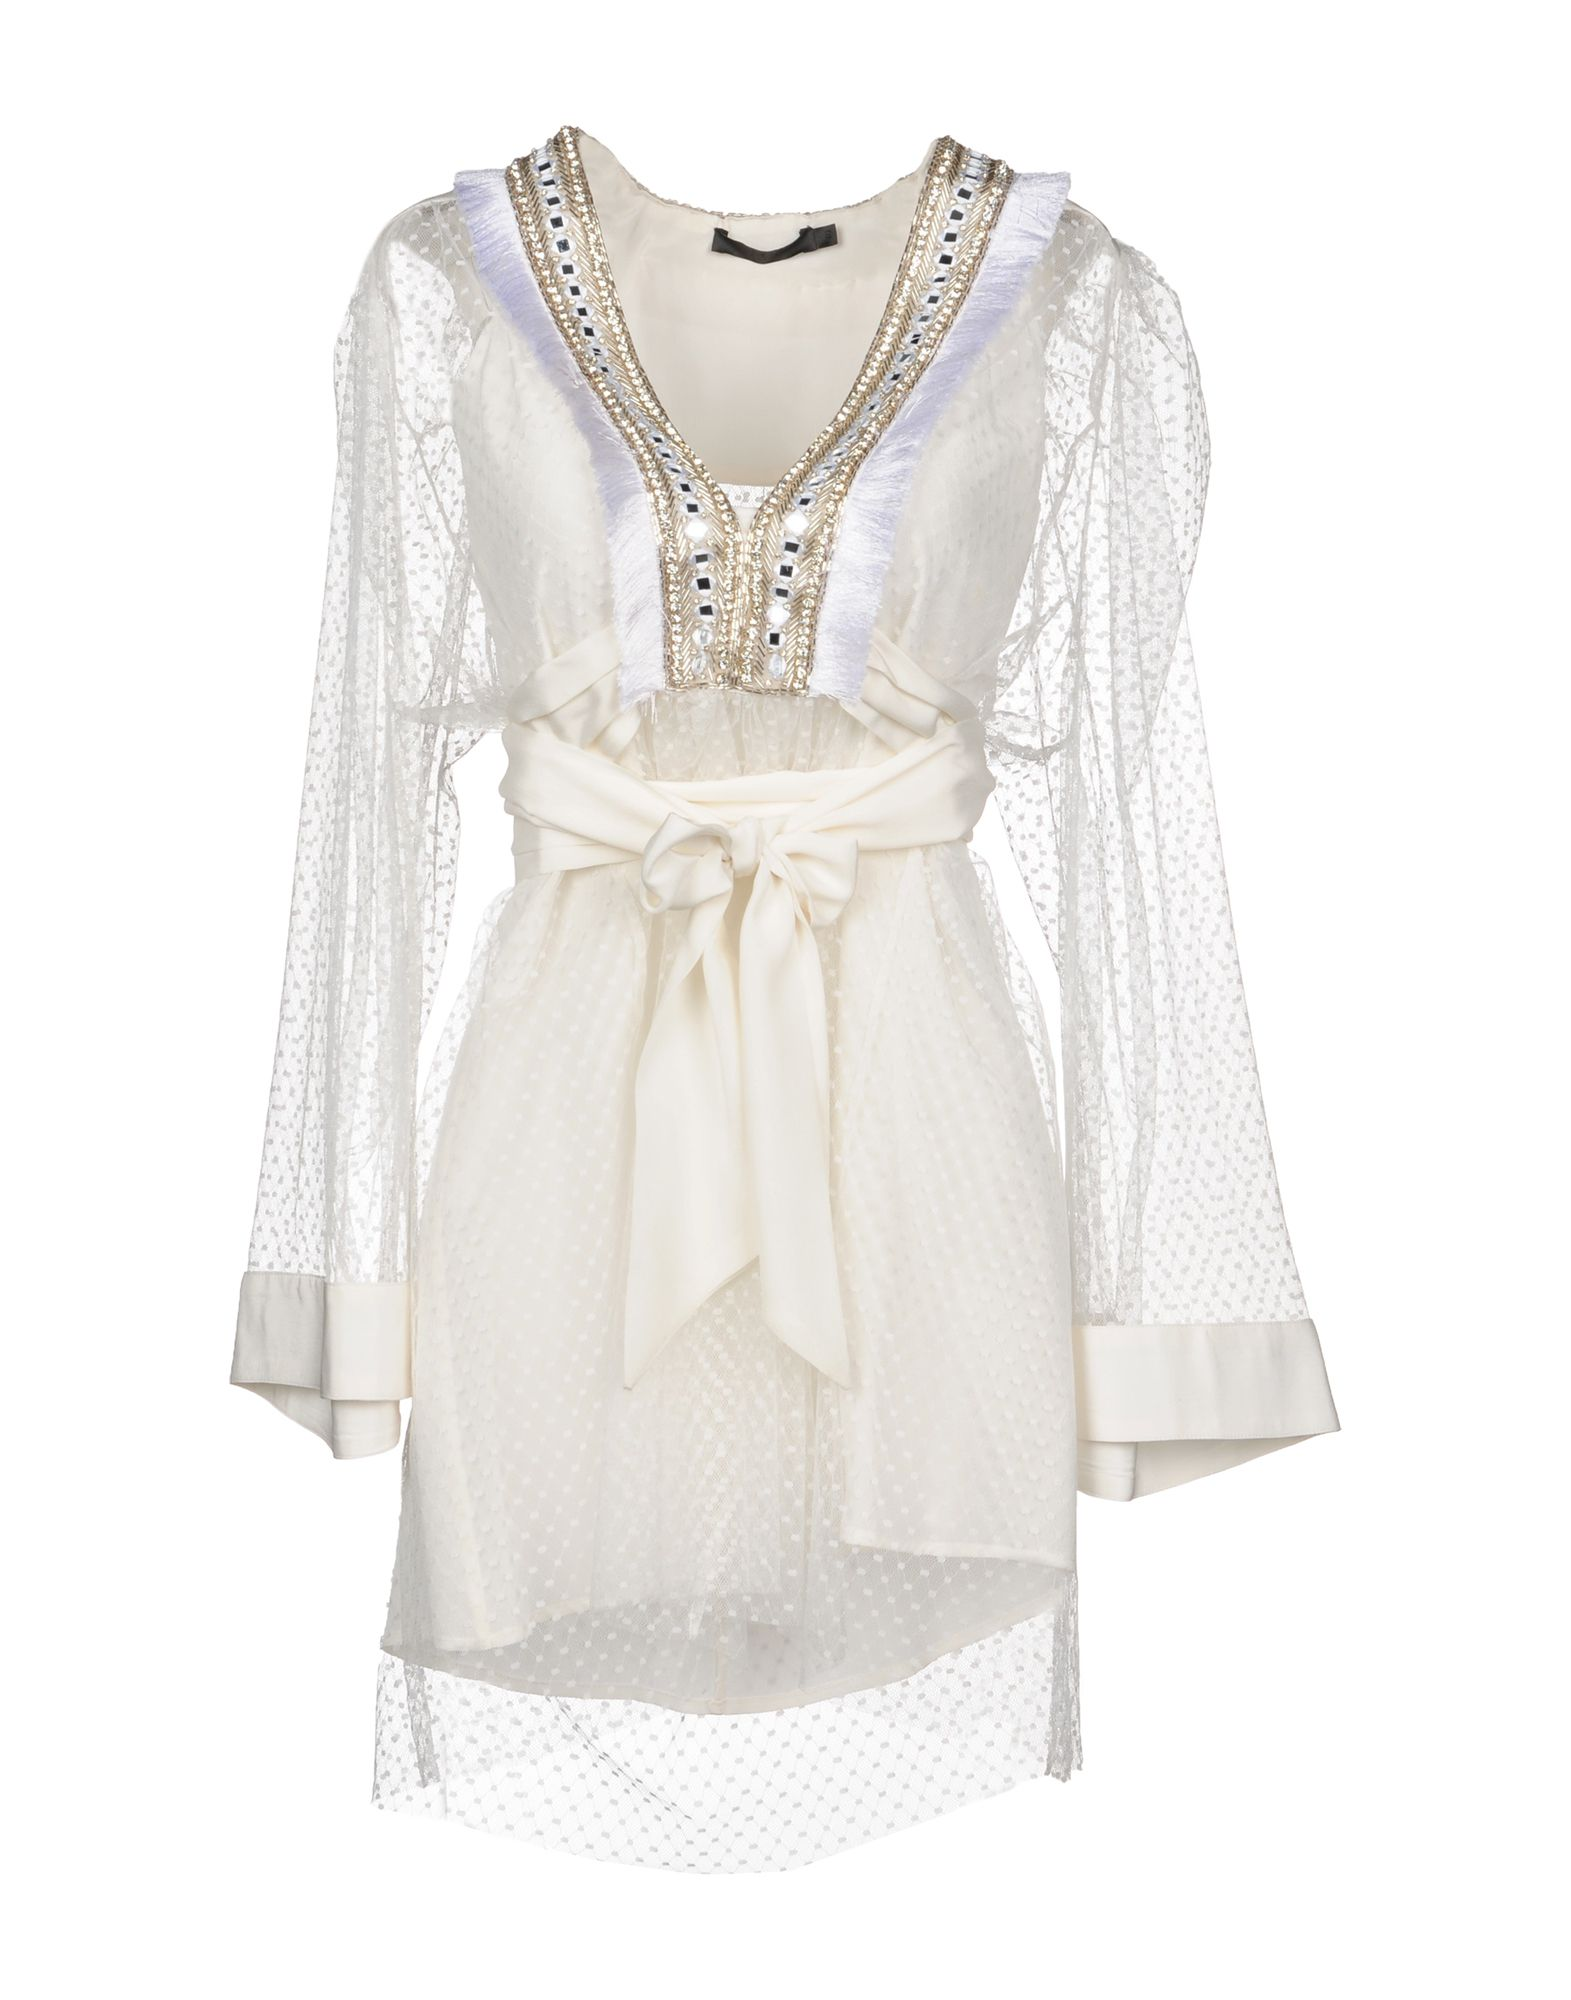 AMEN COUTURE Short Dress in White